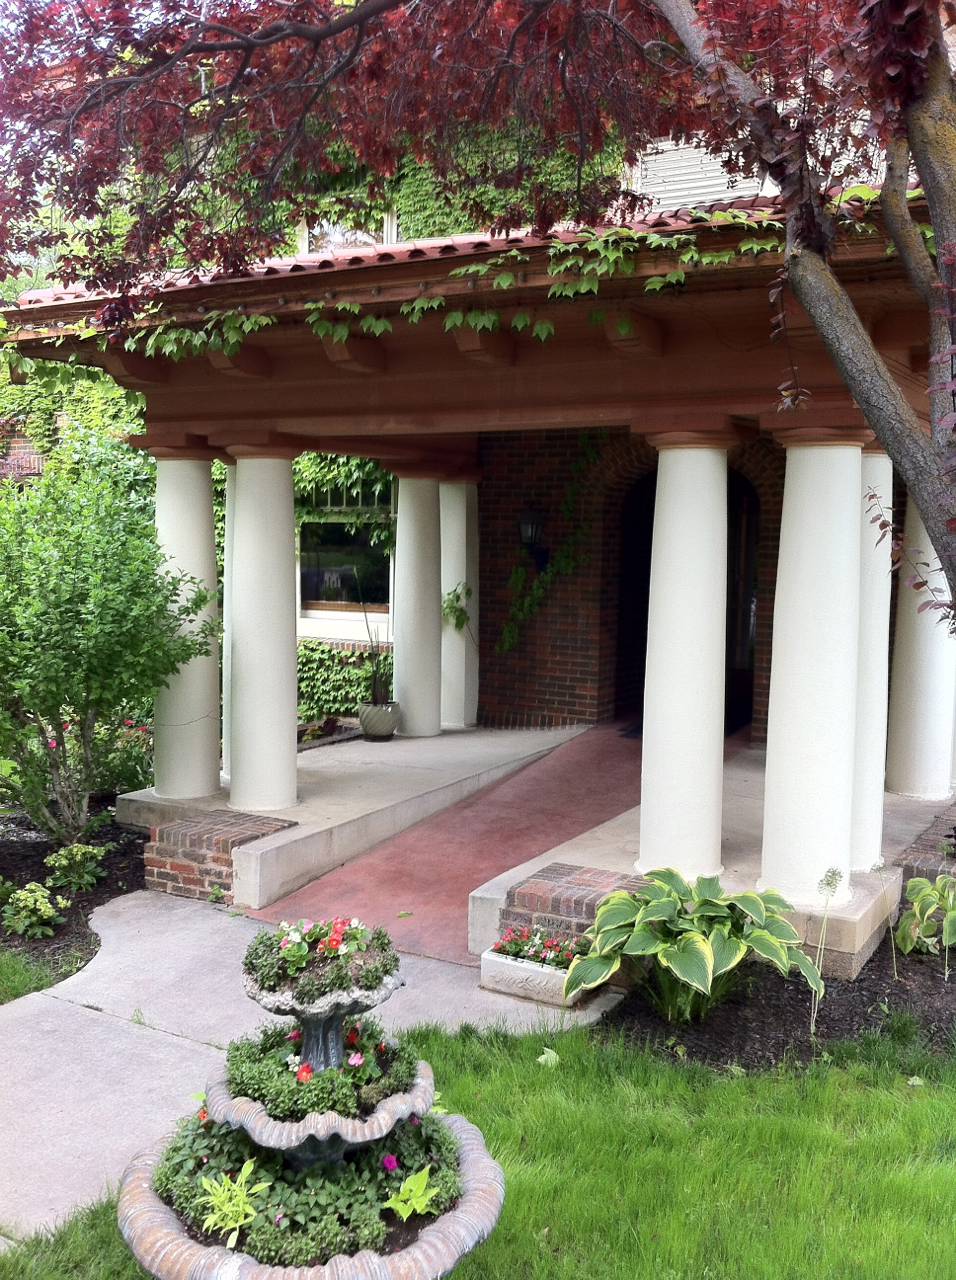 Bellington Manor valet drive and garden reception center in Ogden